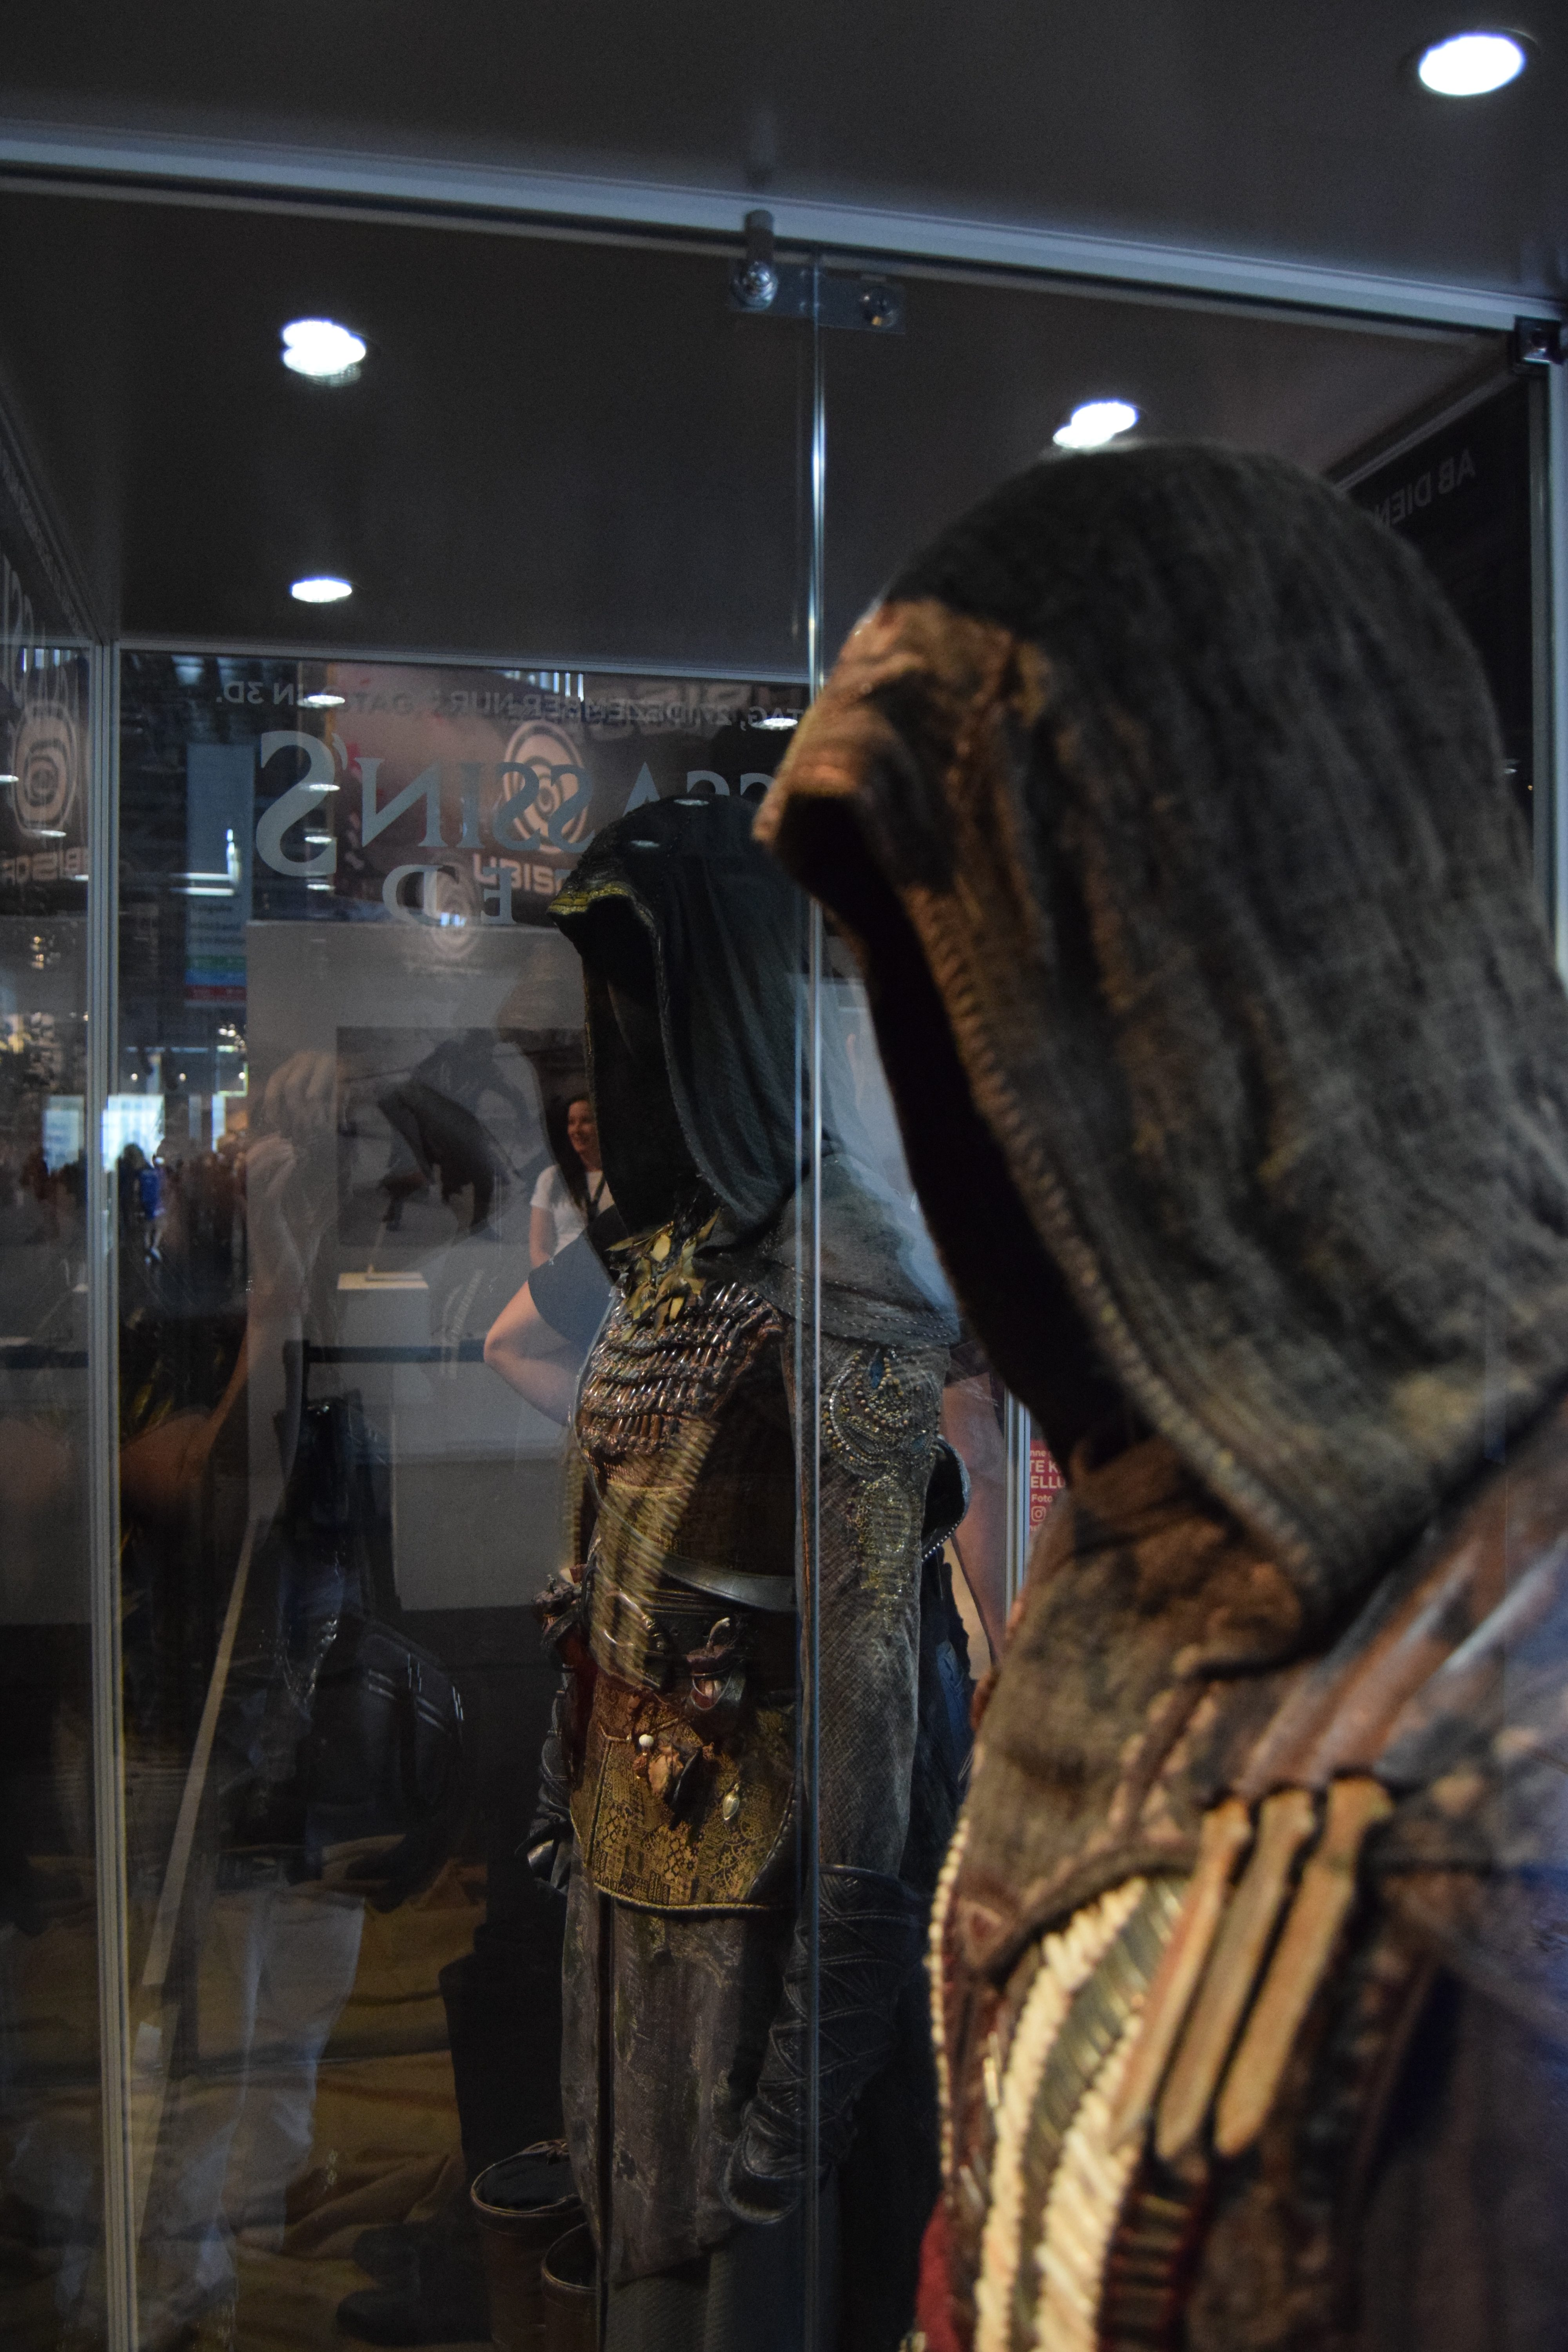 Aguilar and Maria's outfits displayed on mannequins at Gamescom